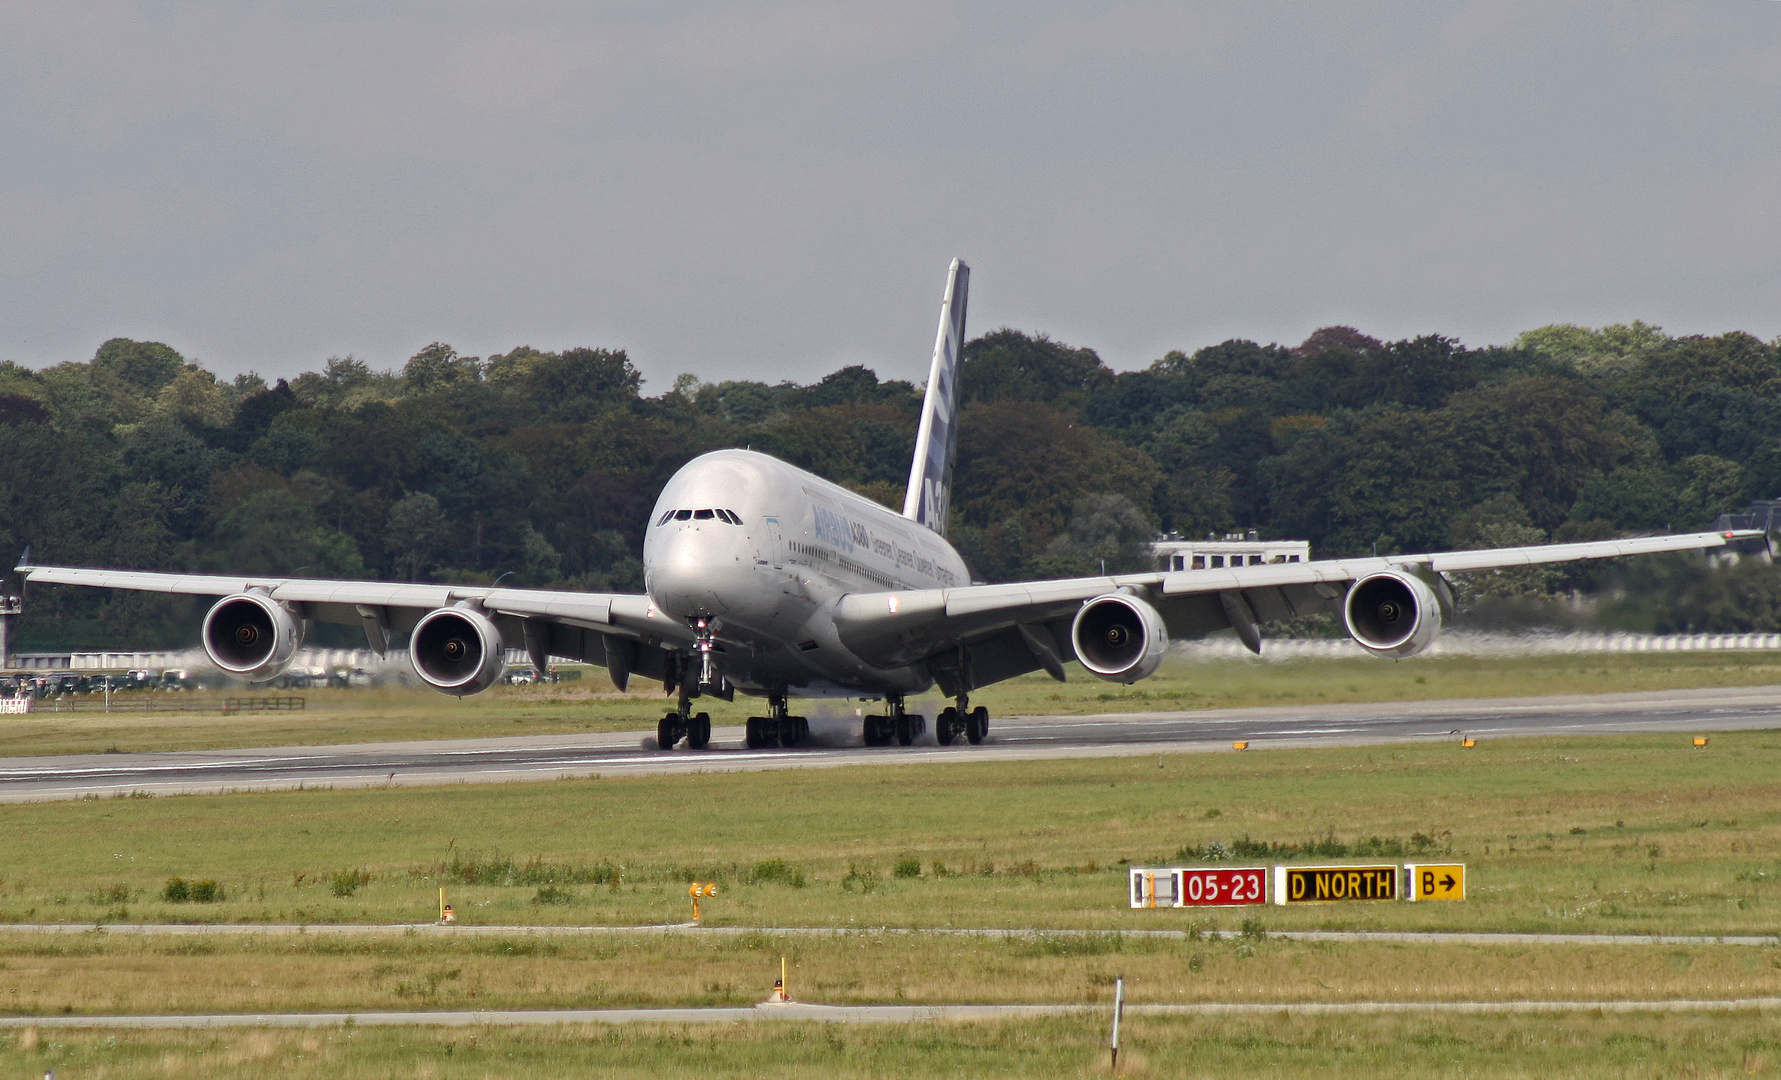 A380 Prototyp #1 visit XFW